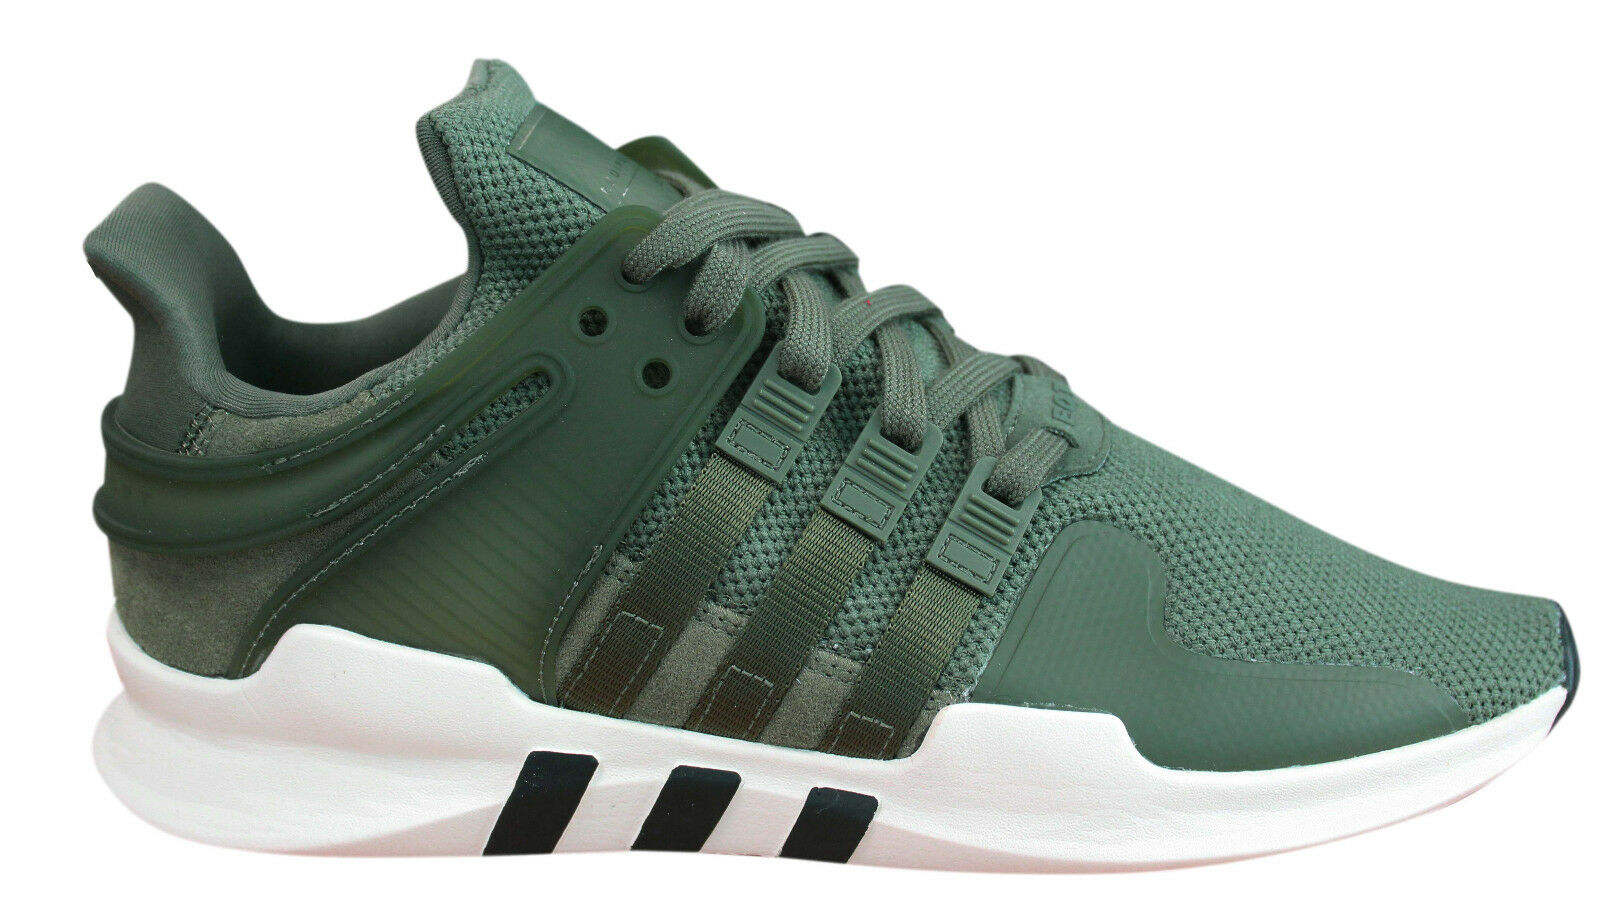 Adidas Originals Equipment Support Adv Womens Trainers Green Textile CP9689 M4